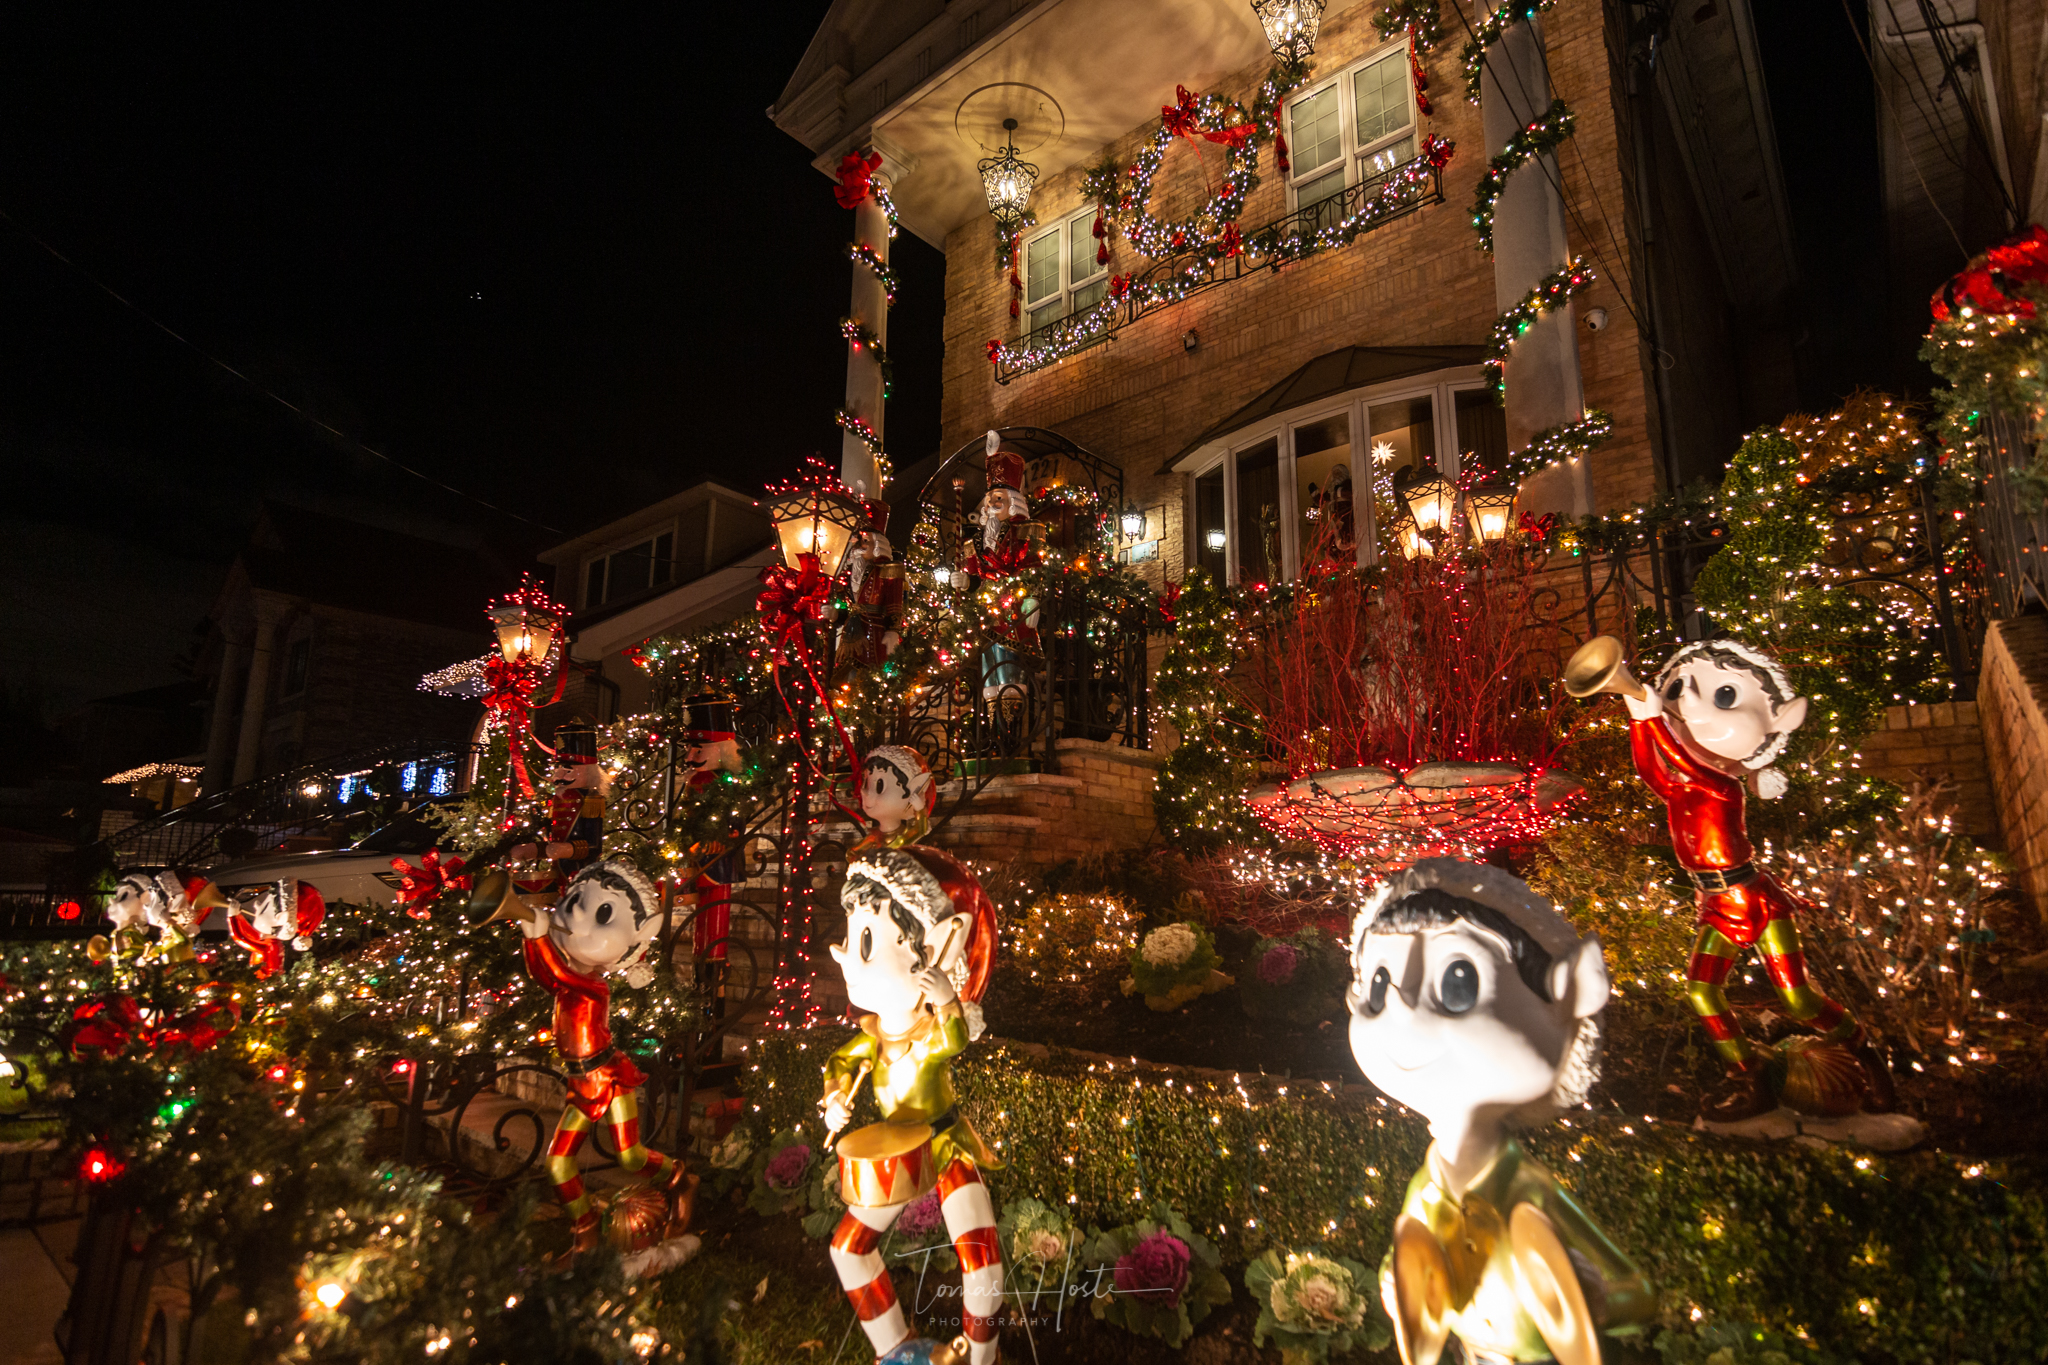 Best Place To See Light Decorations At Christmas